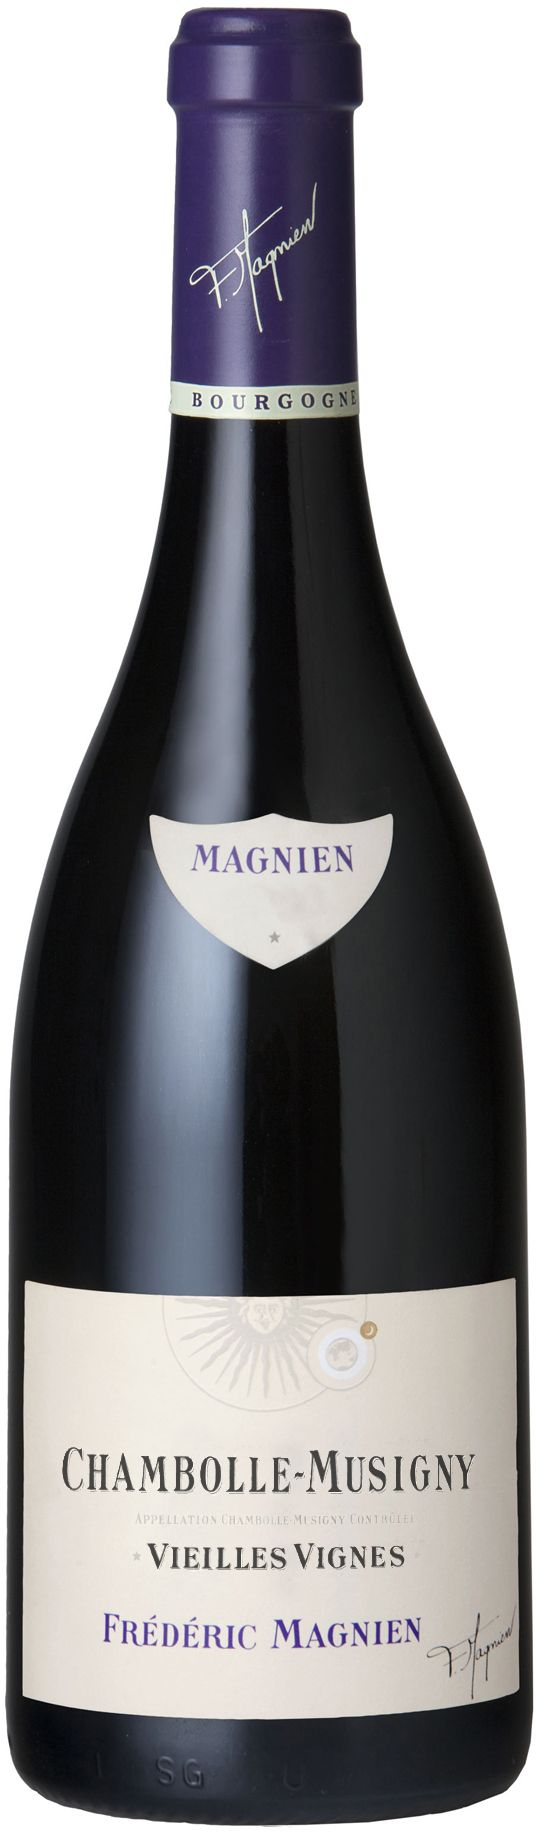 Domaine Frederic Magnien, Chambolle-Musigny Vieilles Vignes, 2008